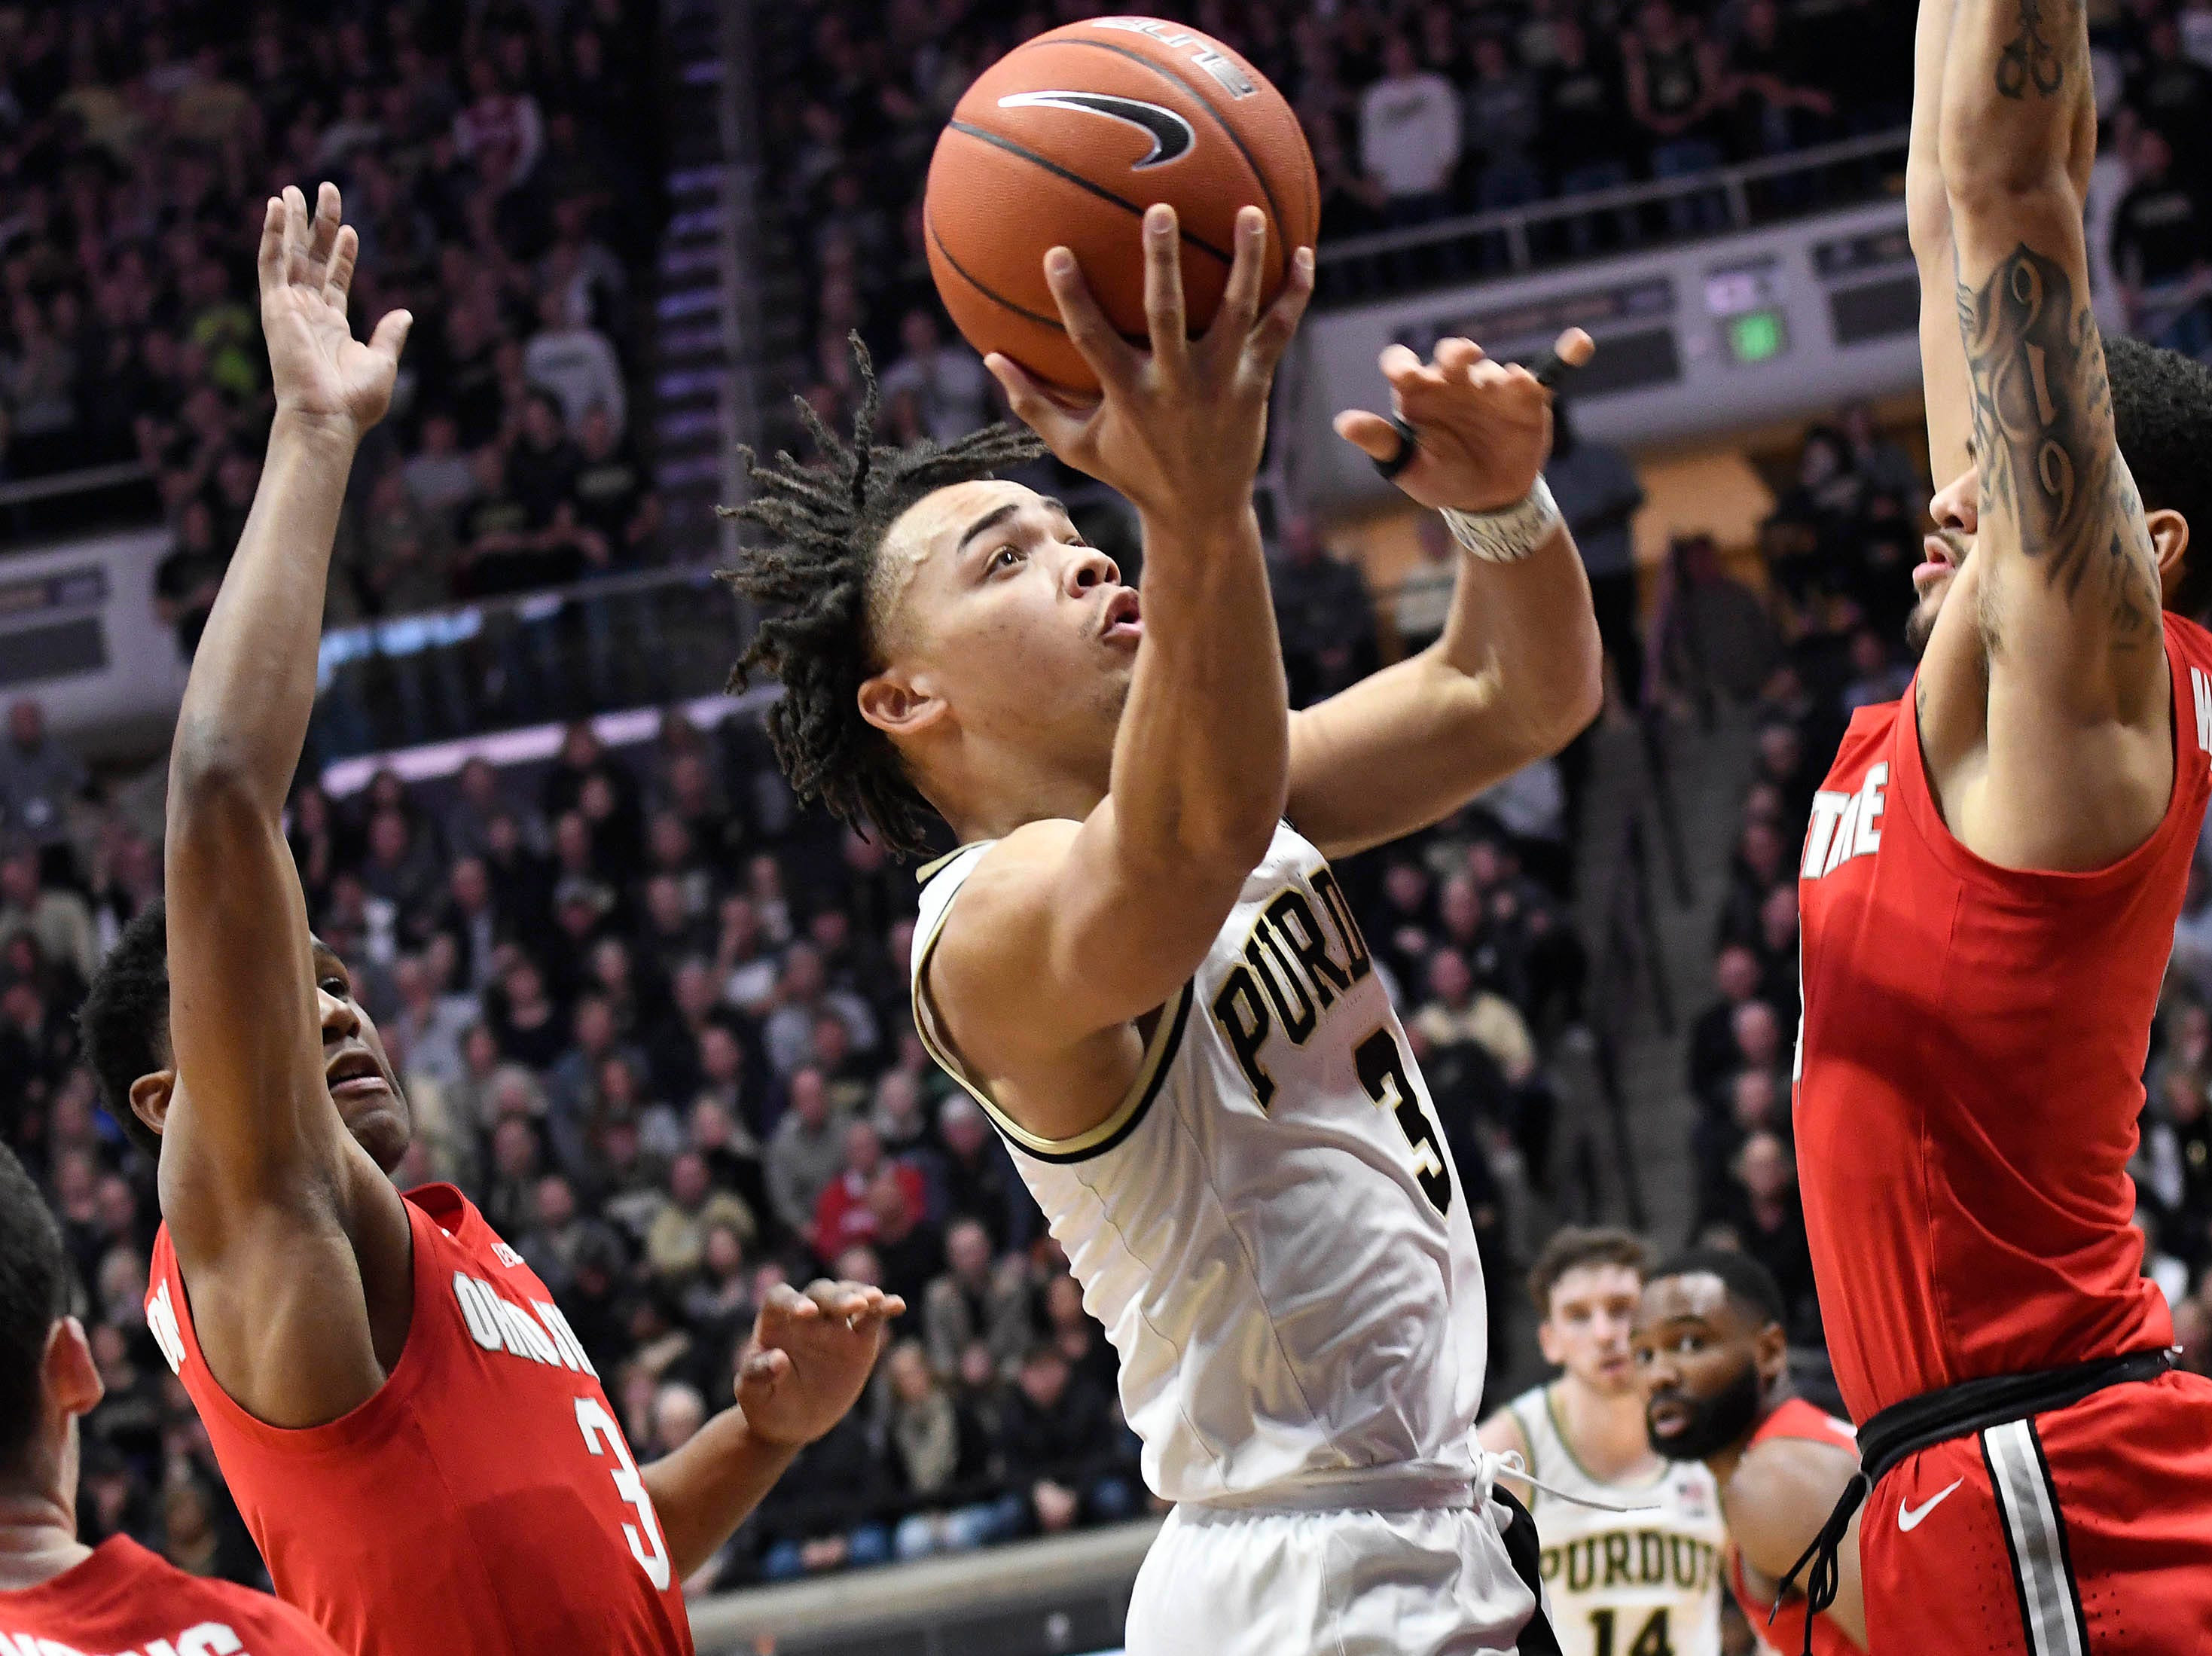 Mar 2, 2019; West Lafayette, IN, USA; Purdue Boilermakers guard Carsen Edwards (3) splits the defense as he goes to the basket in the first half at Mackey Arena. Mandatory Credit: Sandra Dukes-USA TODAY Sports